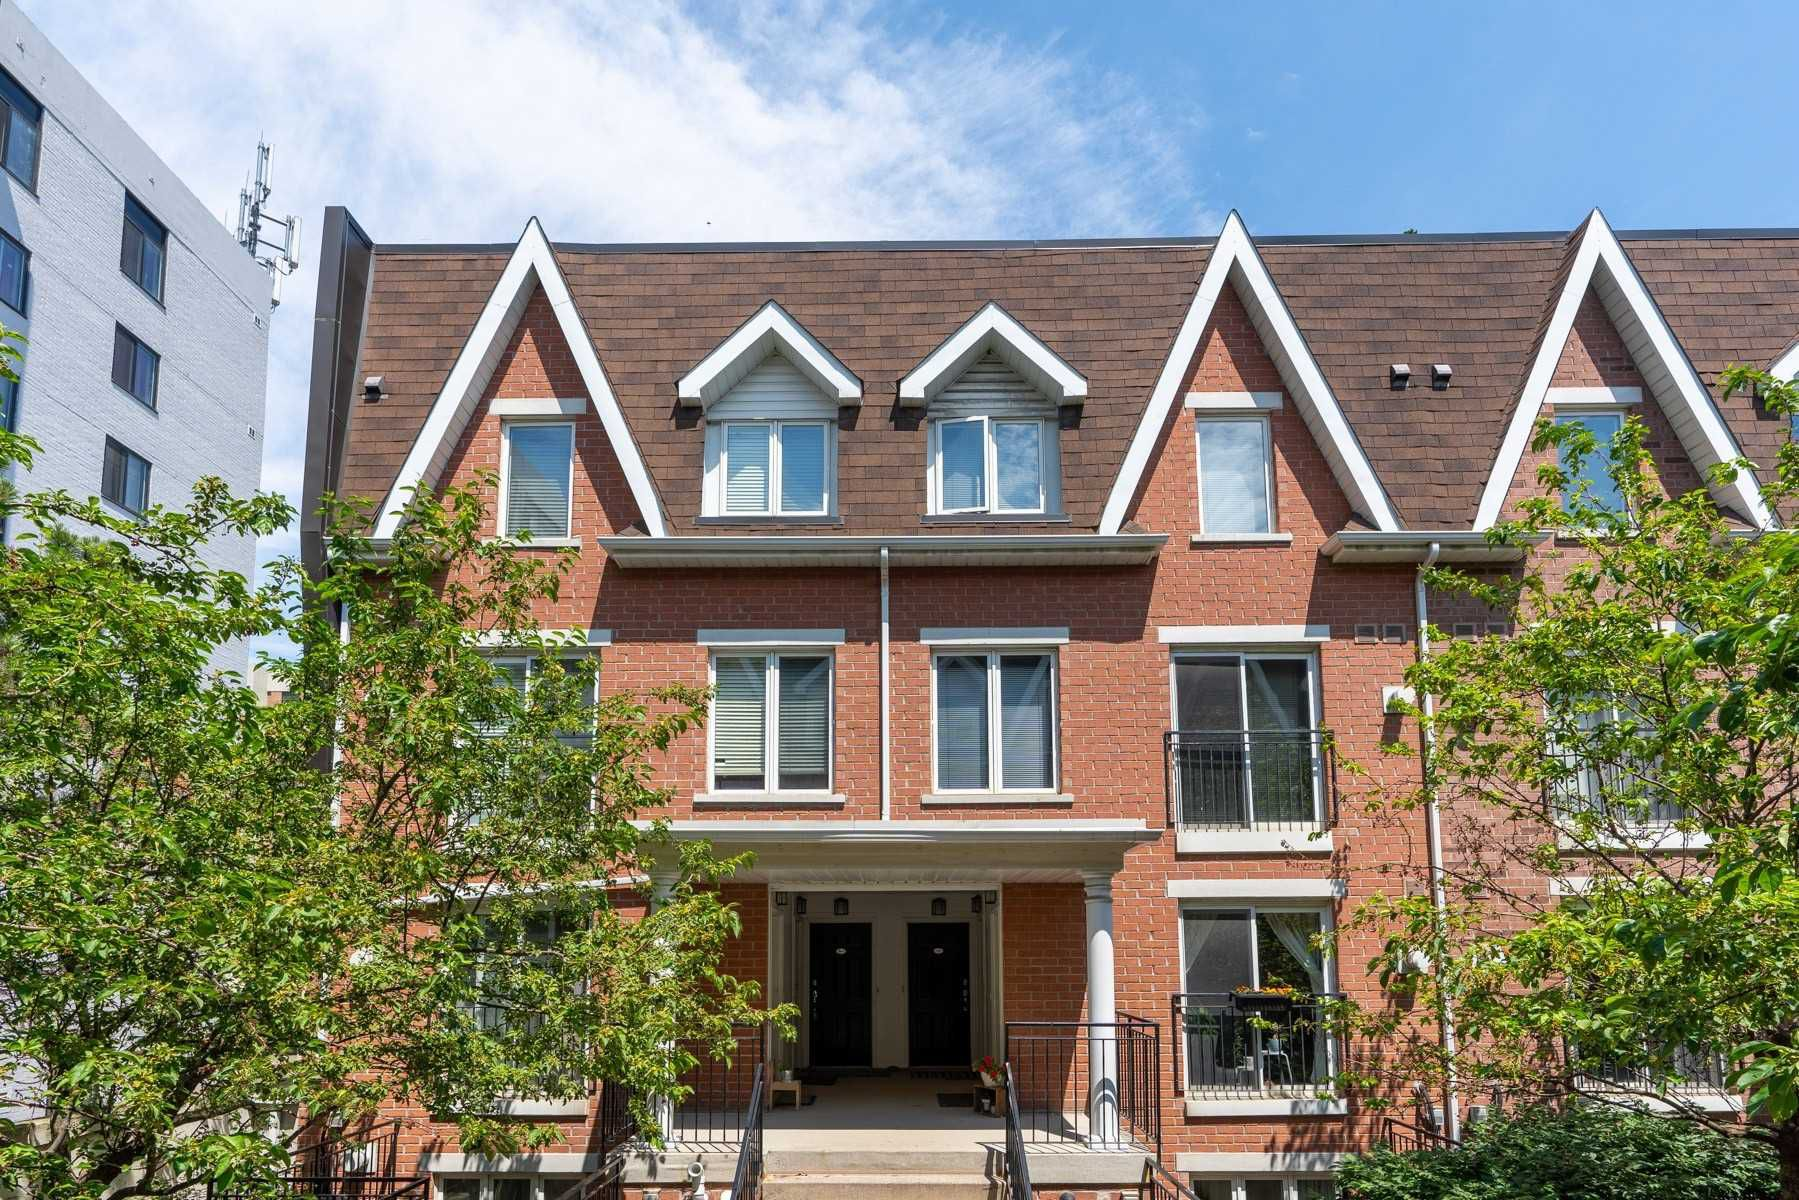 Main Photo: 1004 18 Laidlaw Street in Toronto: South Parkdale Condo for sale (Toronto W01)  : MLS®# W4503115